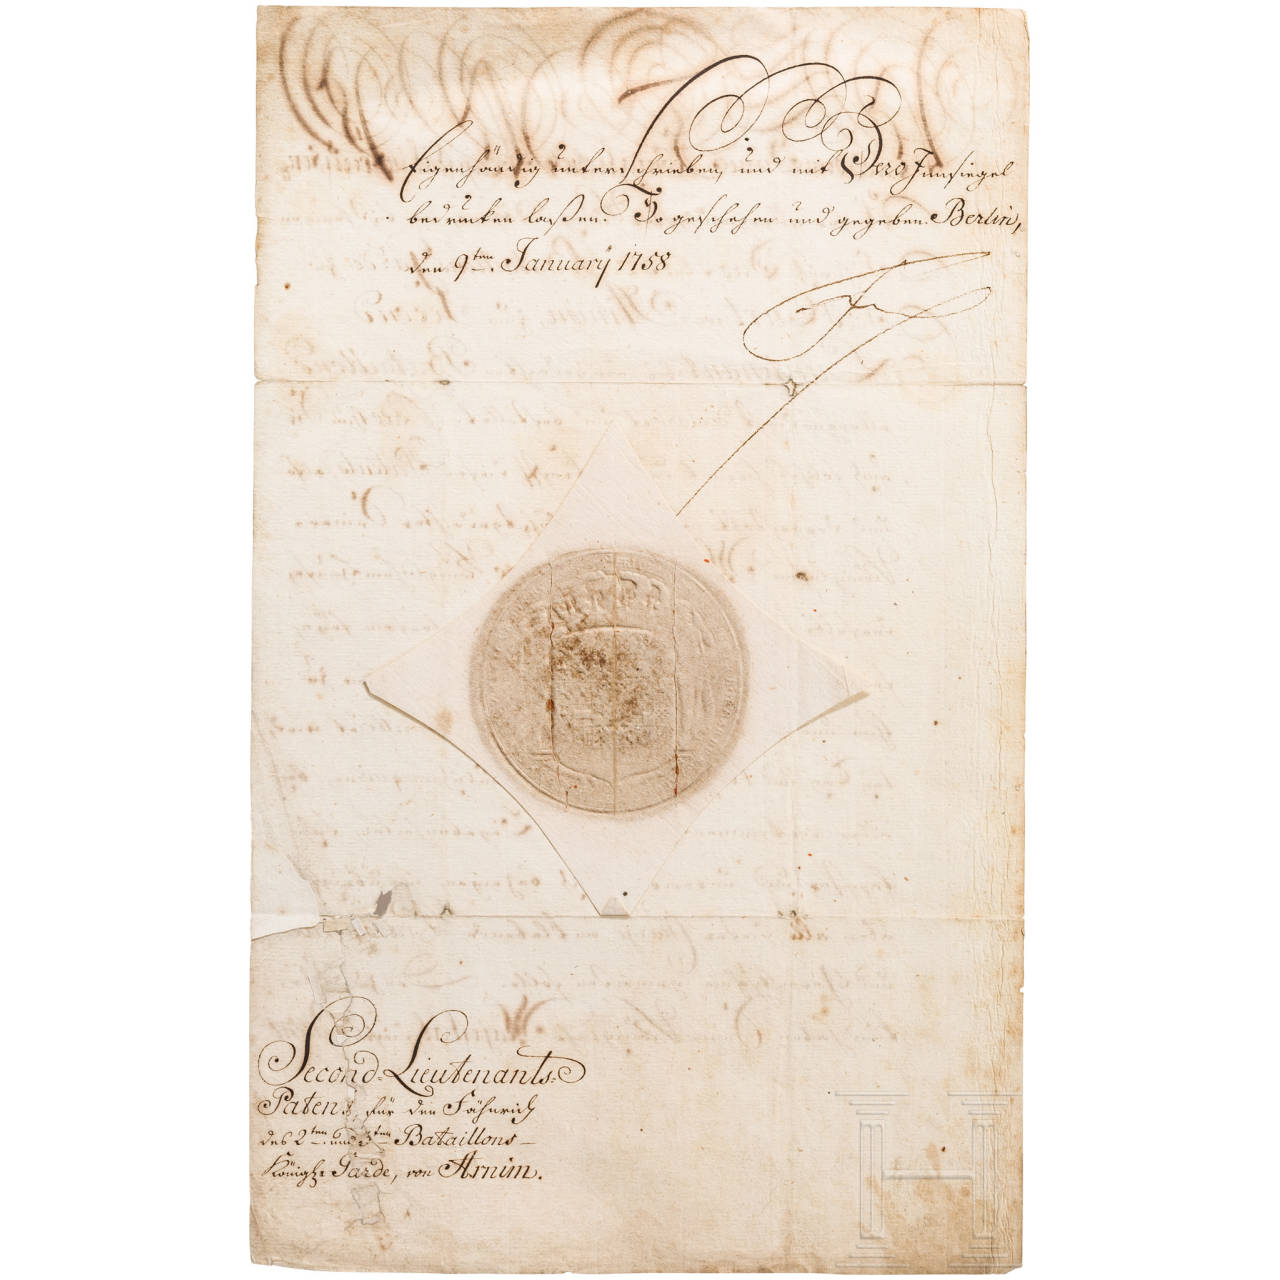 King Frederick II - personally signed patent as seconde lieutenant for Curt von Arnim 1758